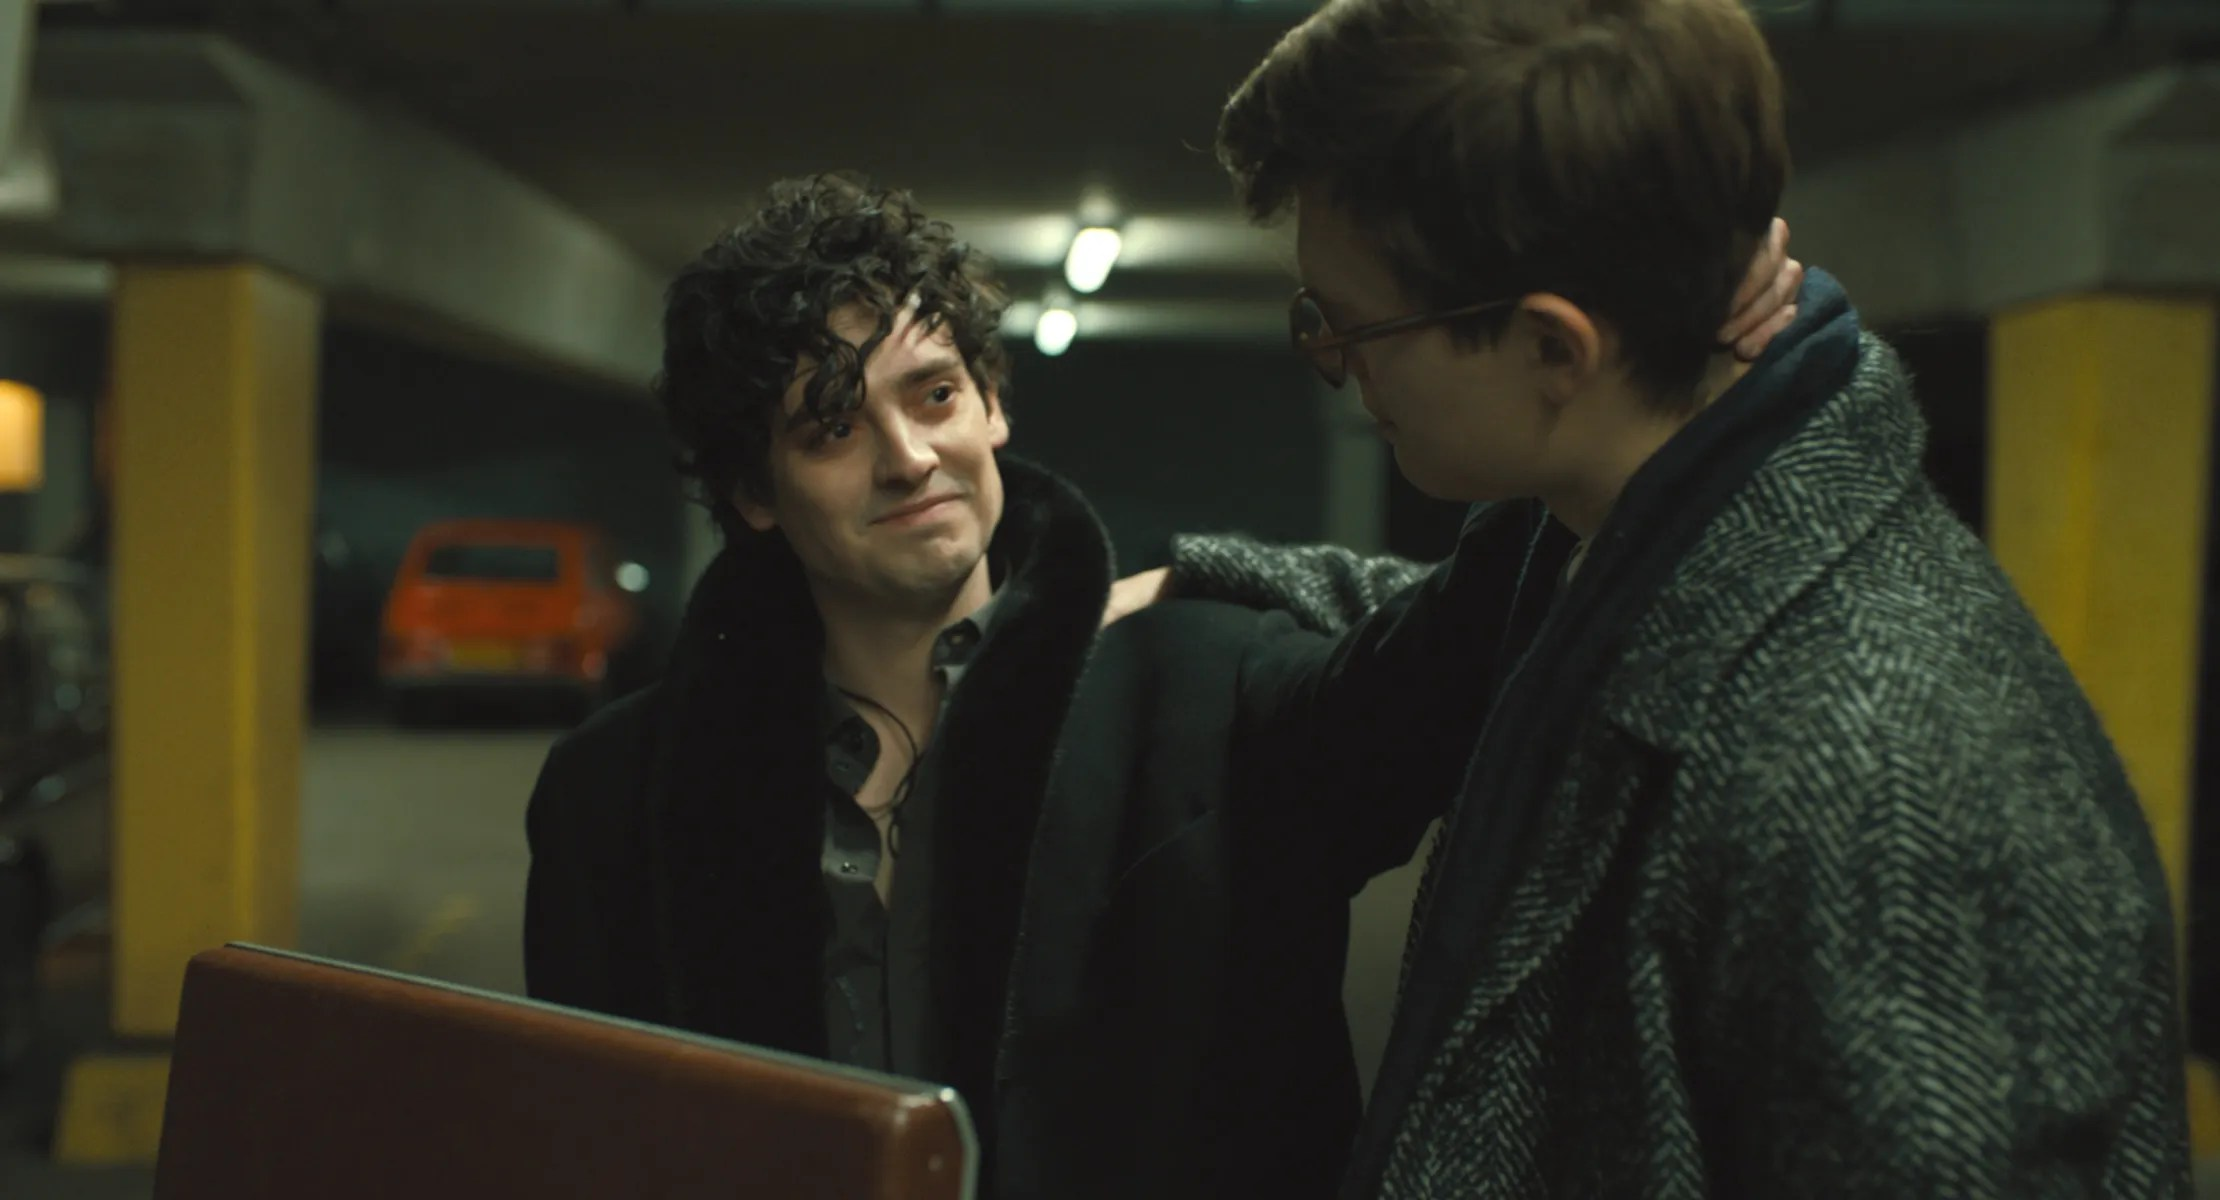 Image result for Aneurin Barnard in the goldfinch